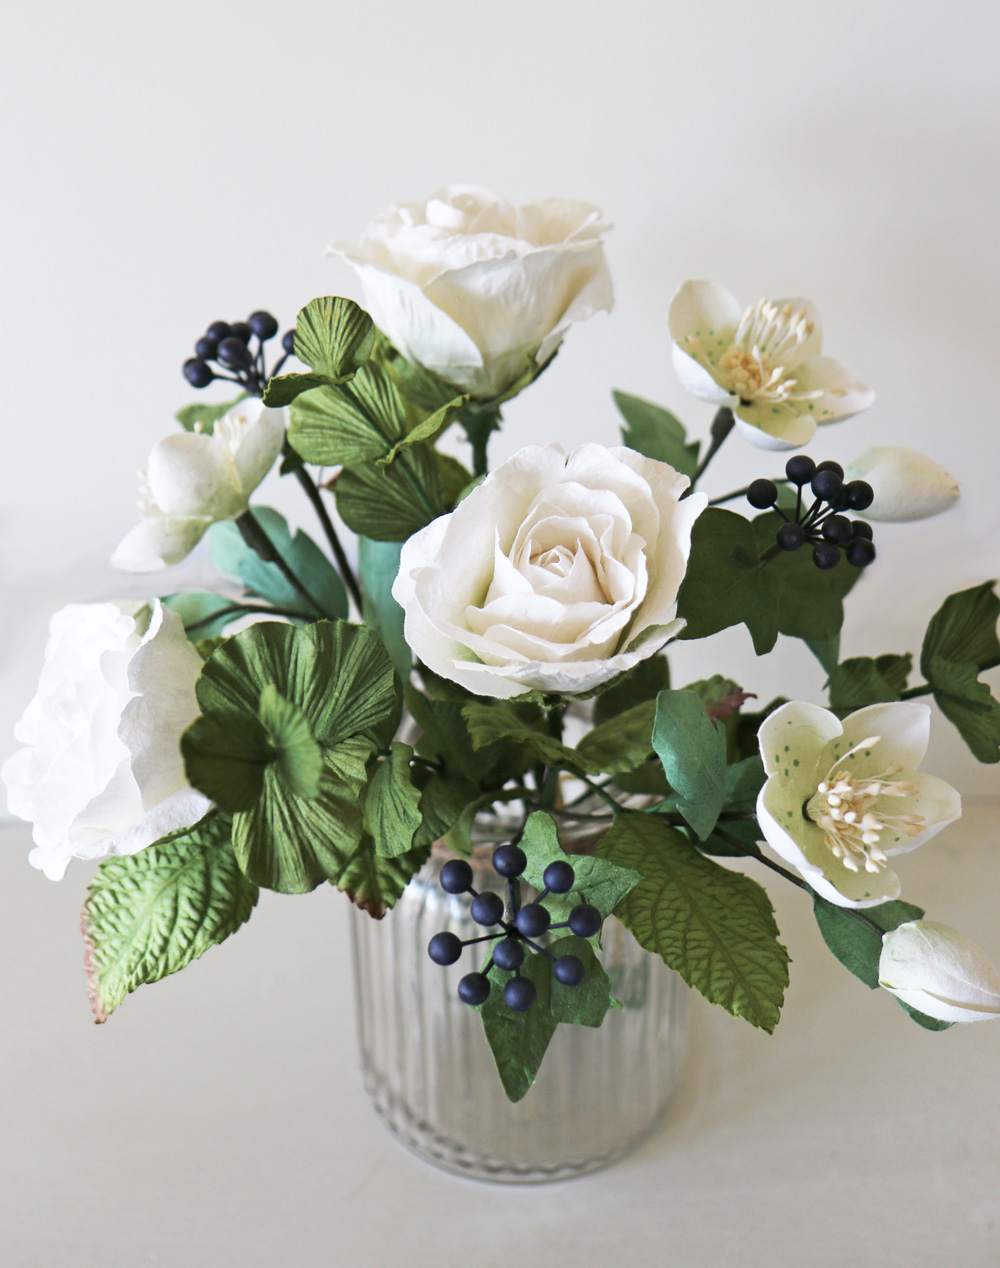 Paper Flower Bouquet | Ivory White Paper Flowers & Foliage